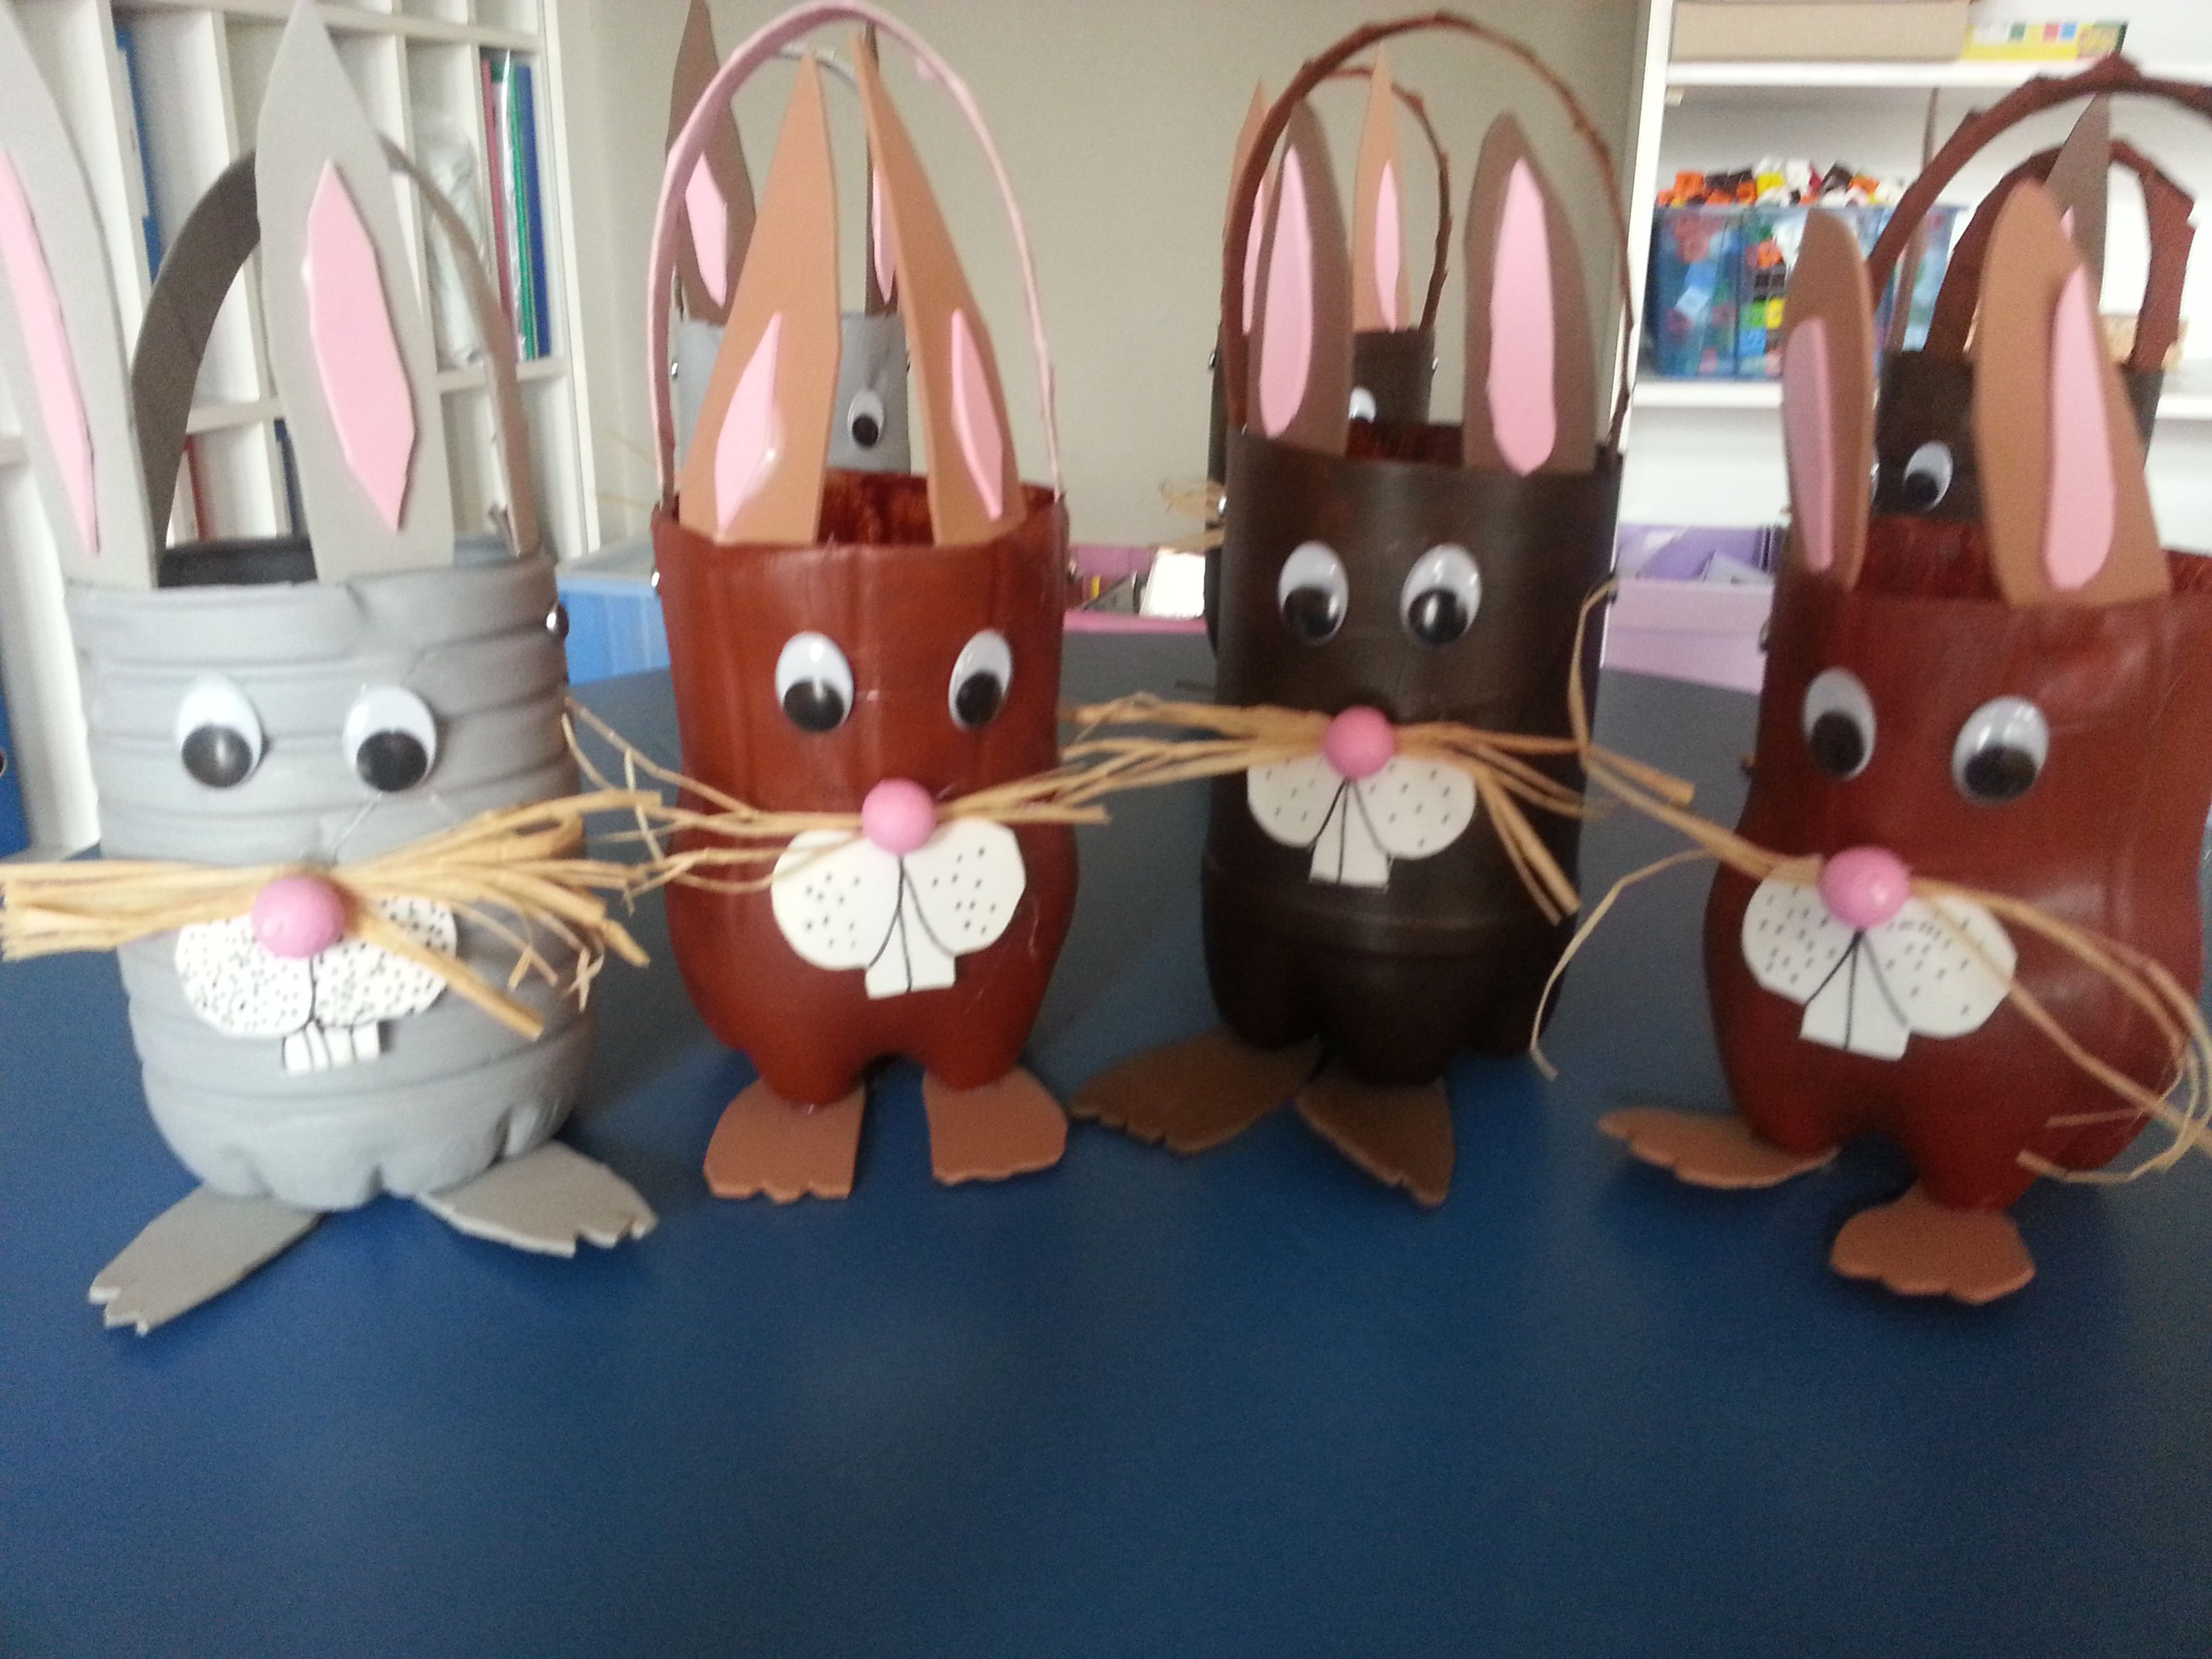 panier lapin bouteille pet p ques easter crafts diy easter decorations en easter. Black Bedroom Furniture Sets. Home Design Ideas